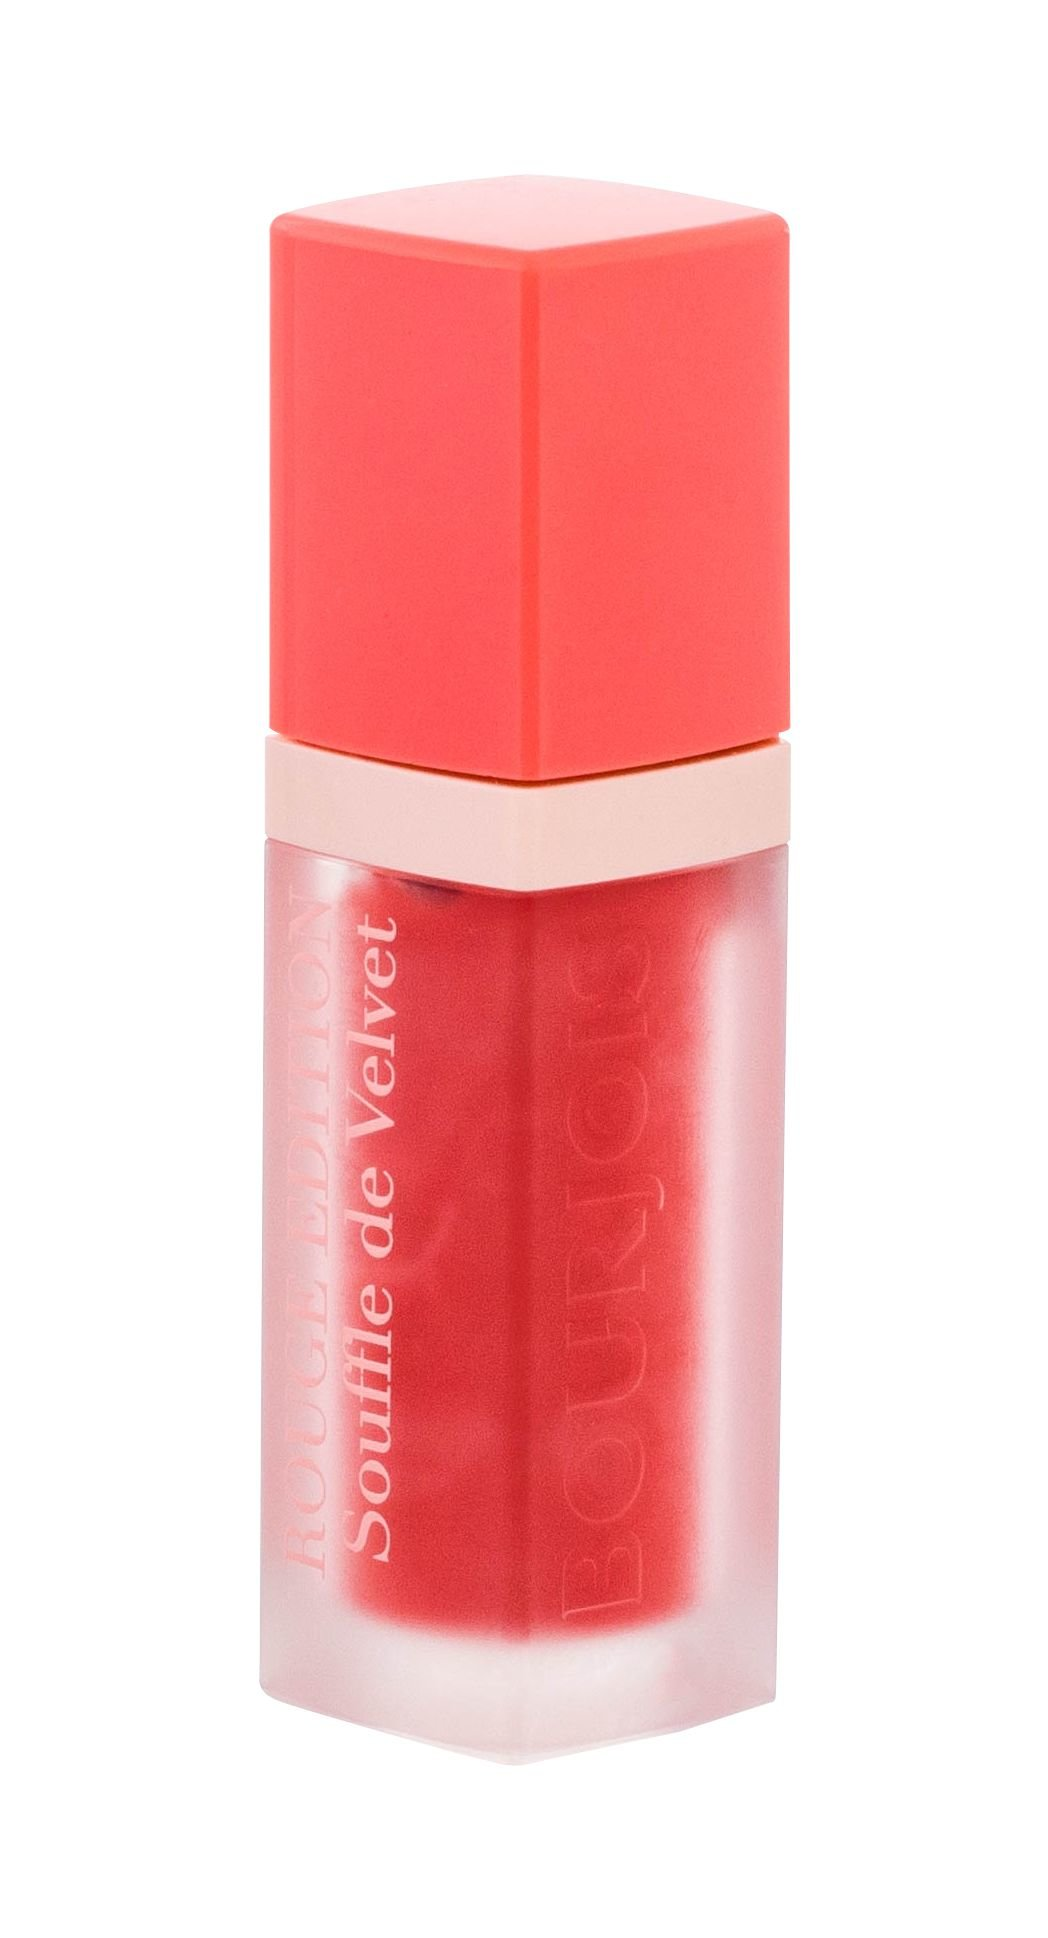 BOURJOIS Paris Rouge Edition Cosmetic 7,7ml 04 Ravie En Rose